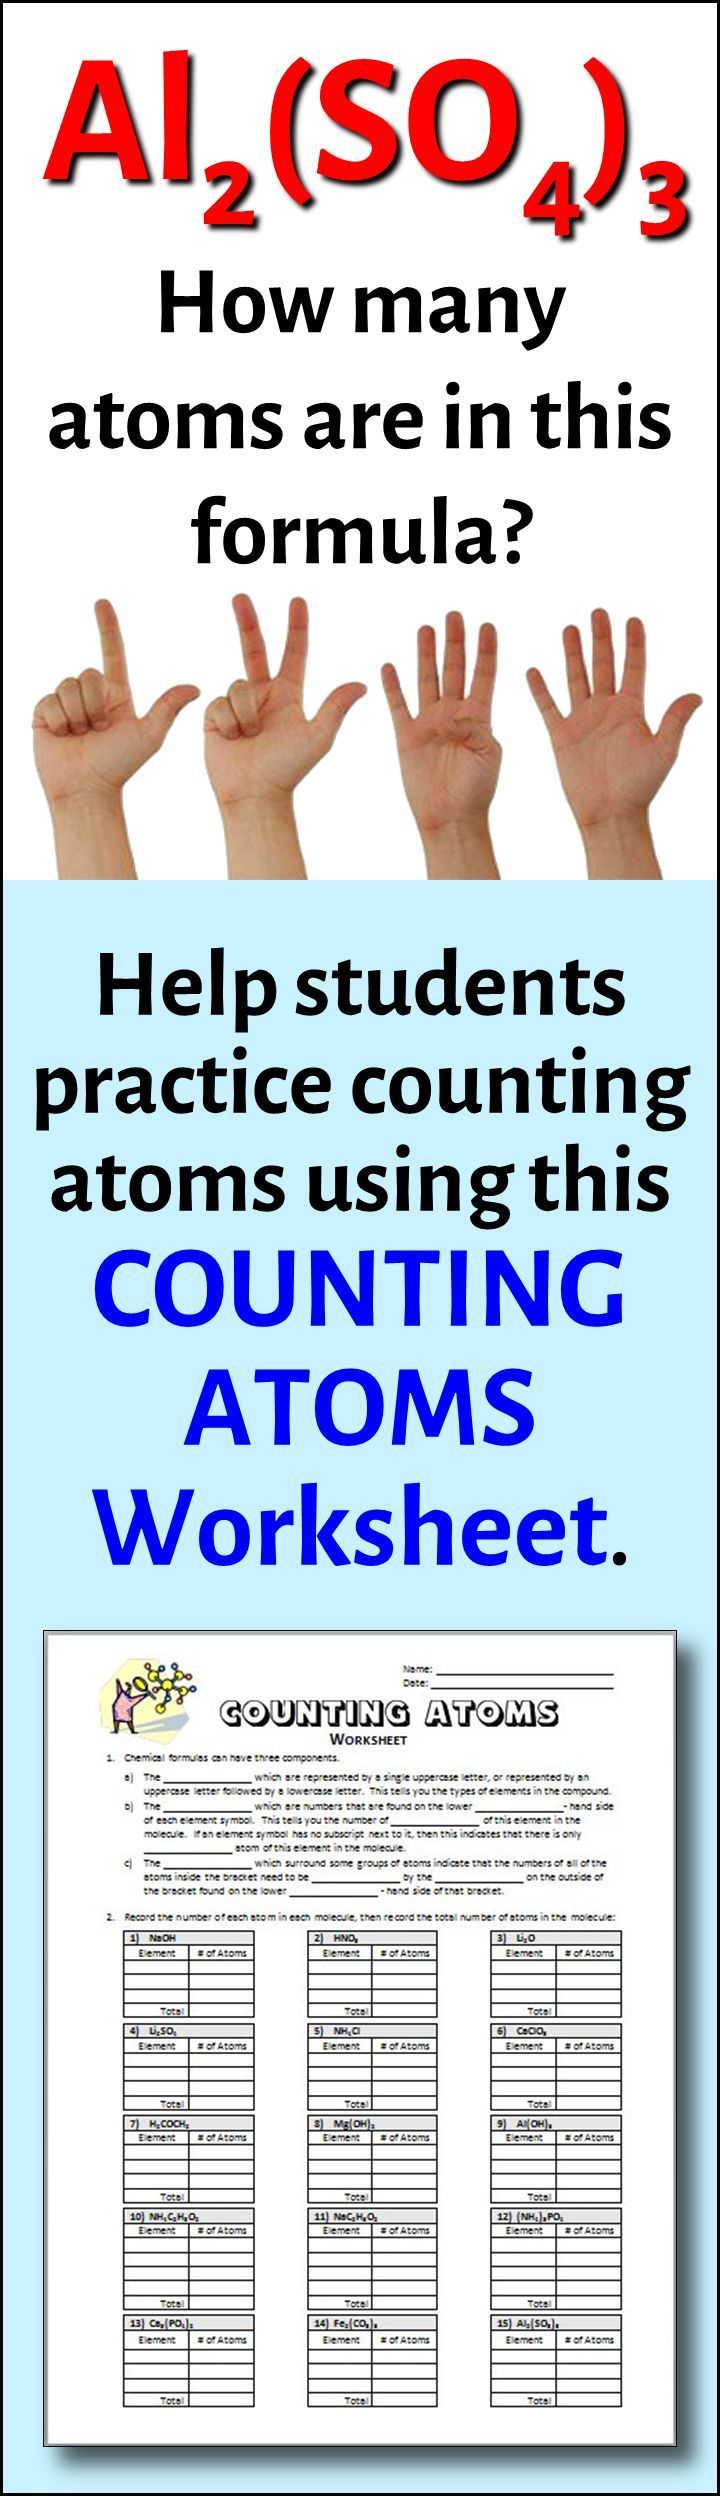 Counting Atoms Worksheet {Editable} Chemistry education